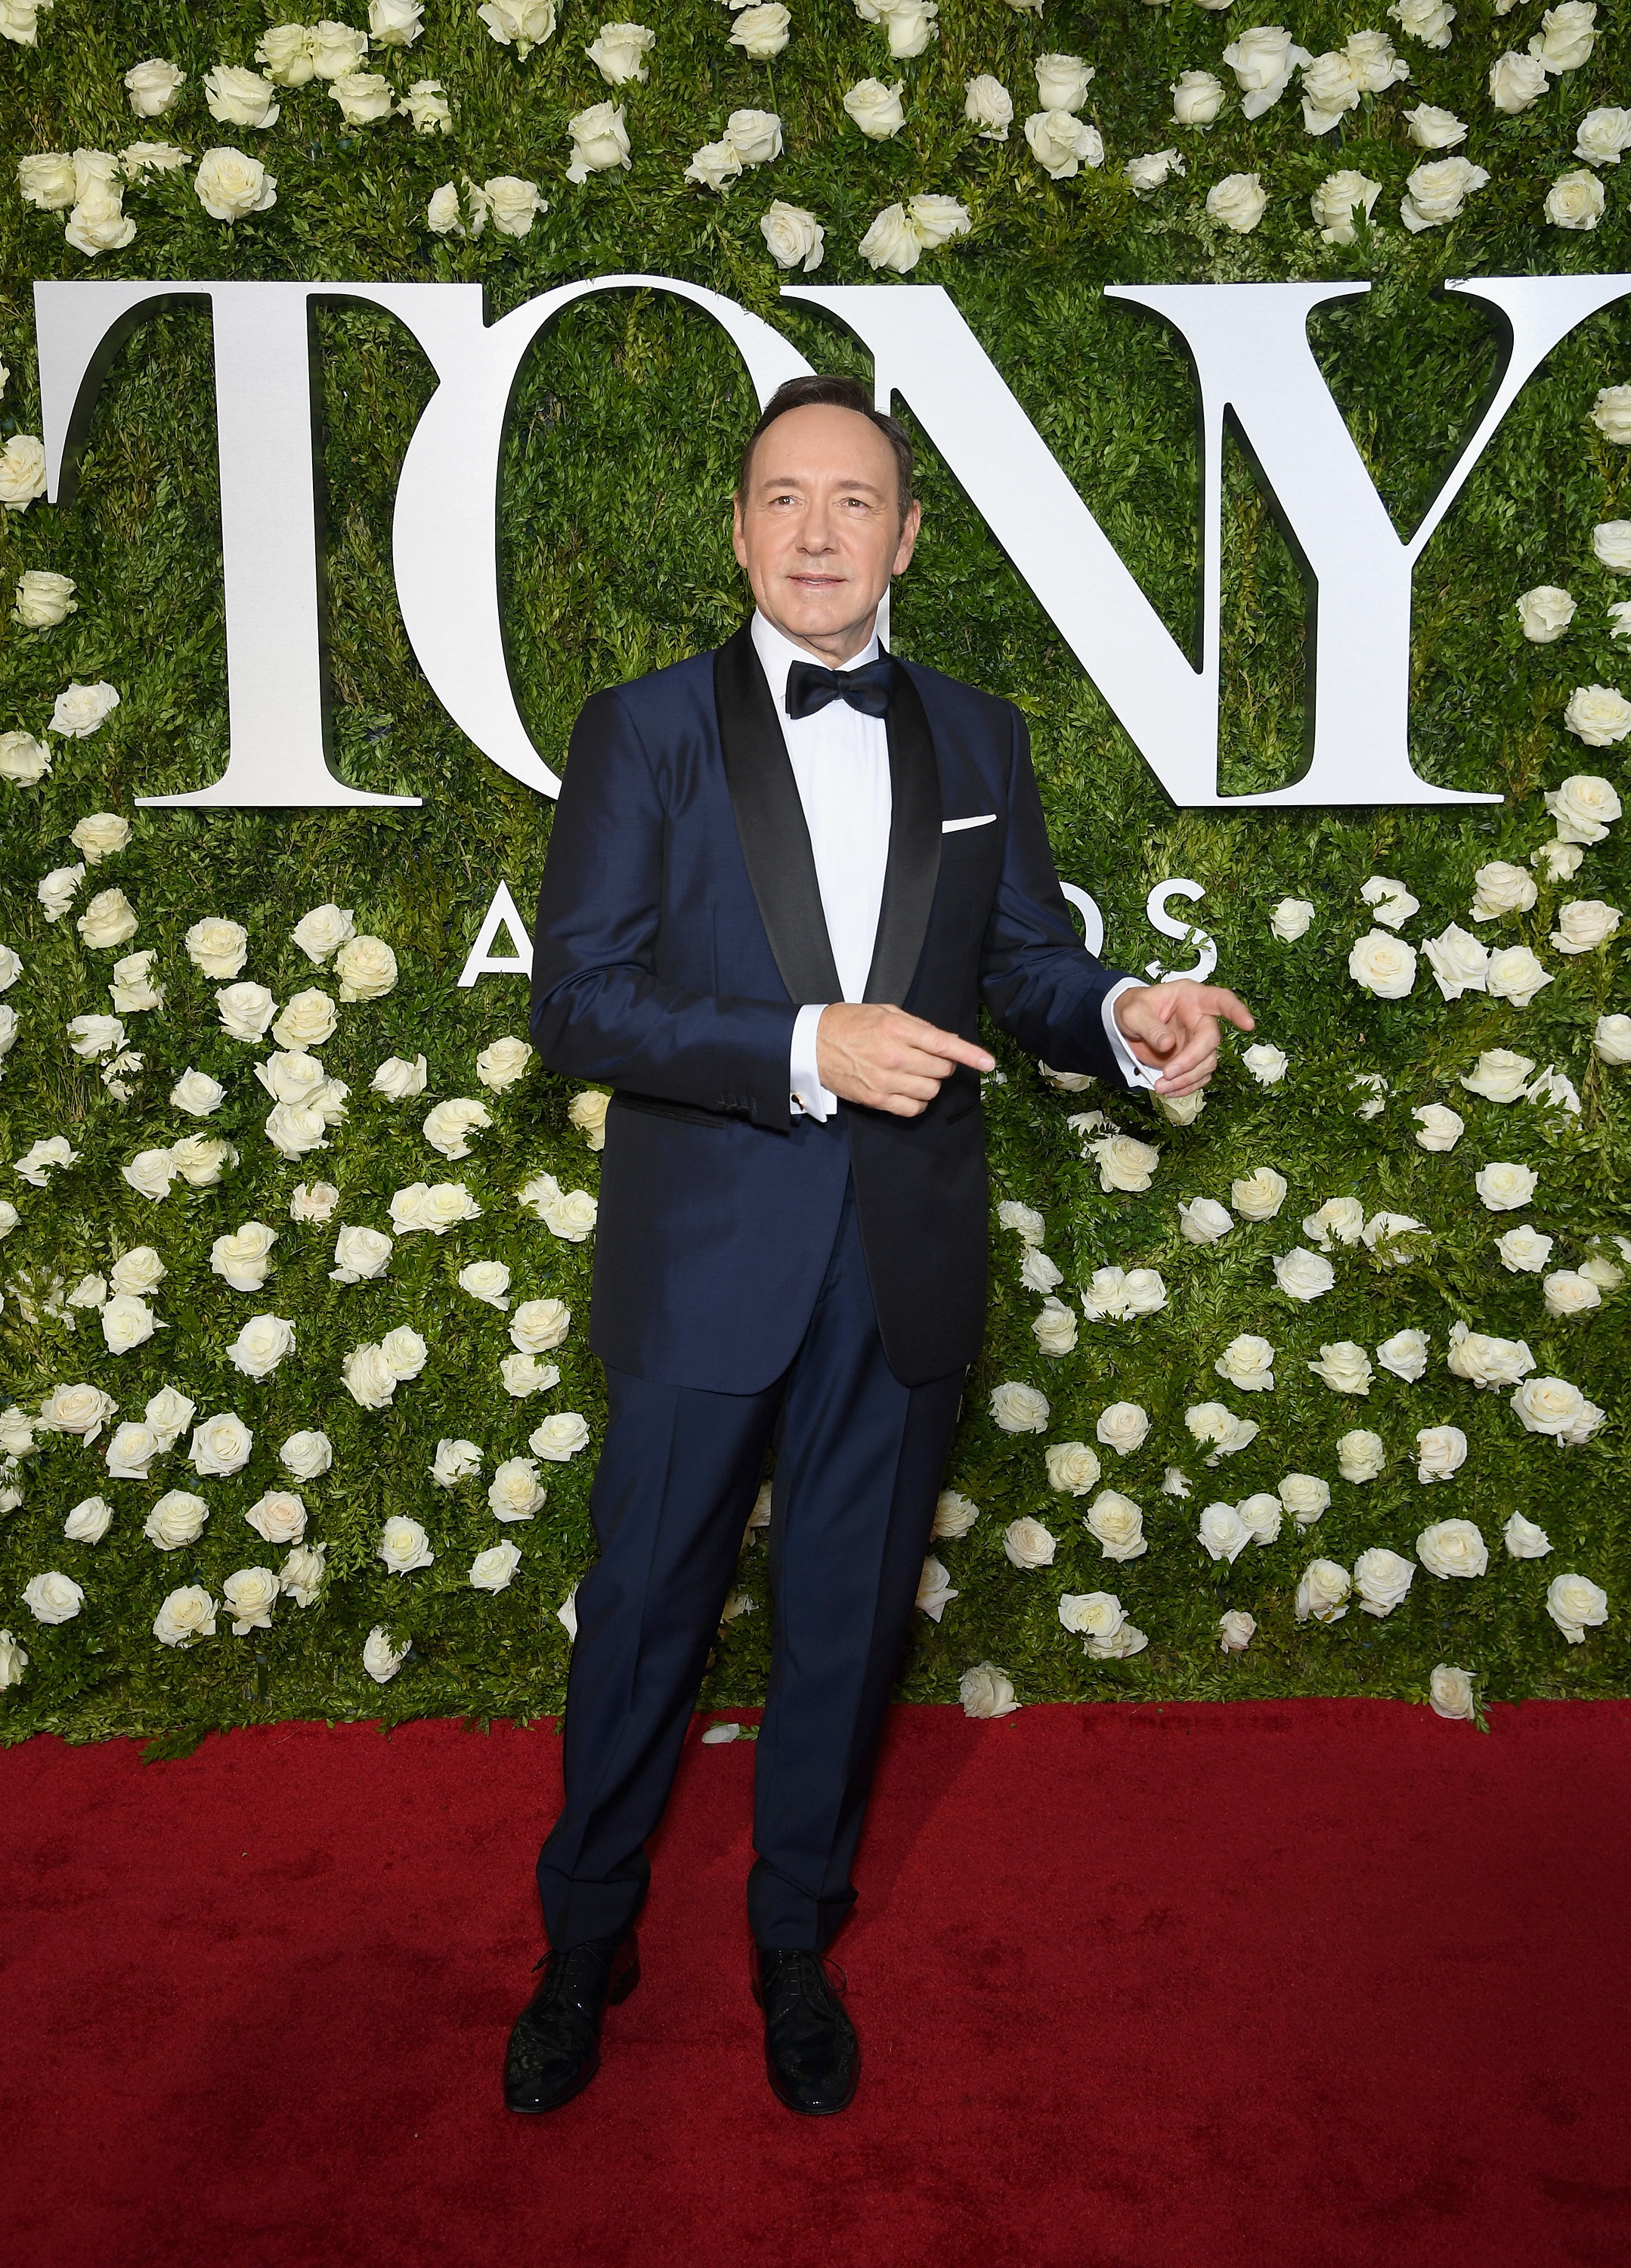 NEW YORK, NY - JUNE 11:  Host Kevin Spacey attends the 2017 Tony Awards at Radio City Music Hall on June 11, 2017 in New York City.  (Photo by Dimitrios Kambouris/Getty Images for Tony Awards Productions)